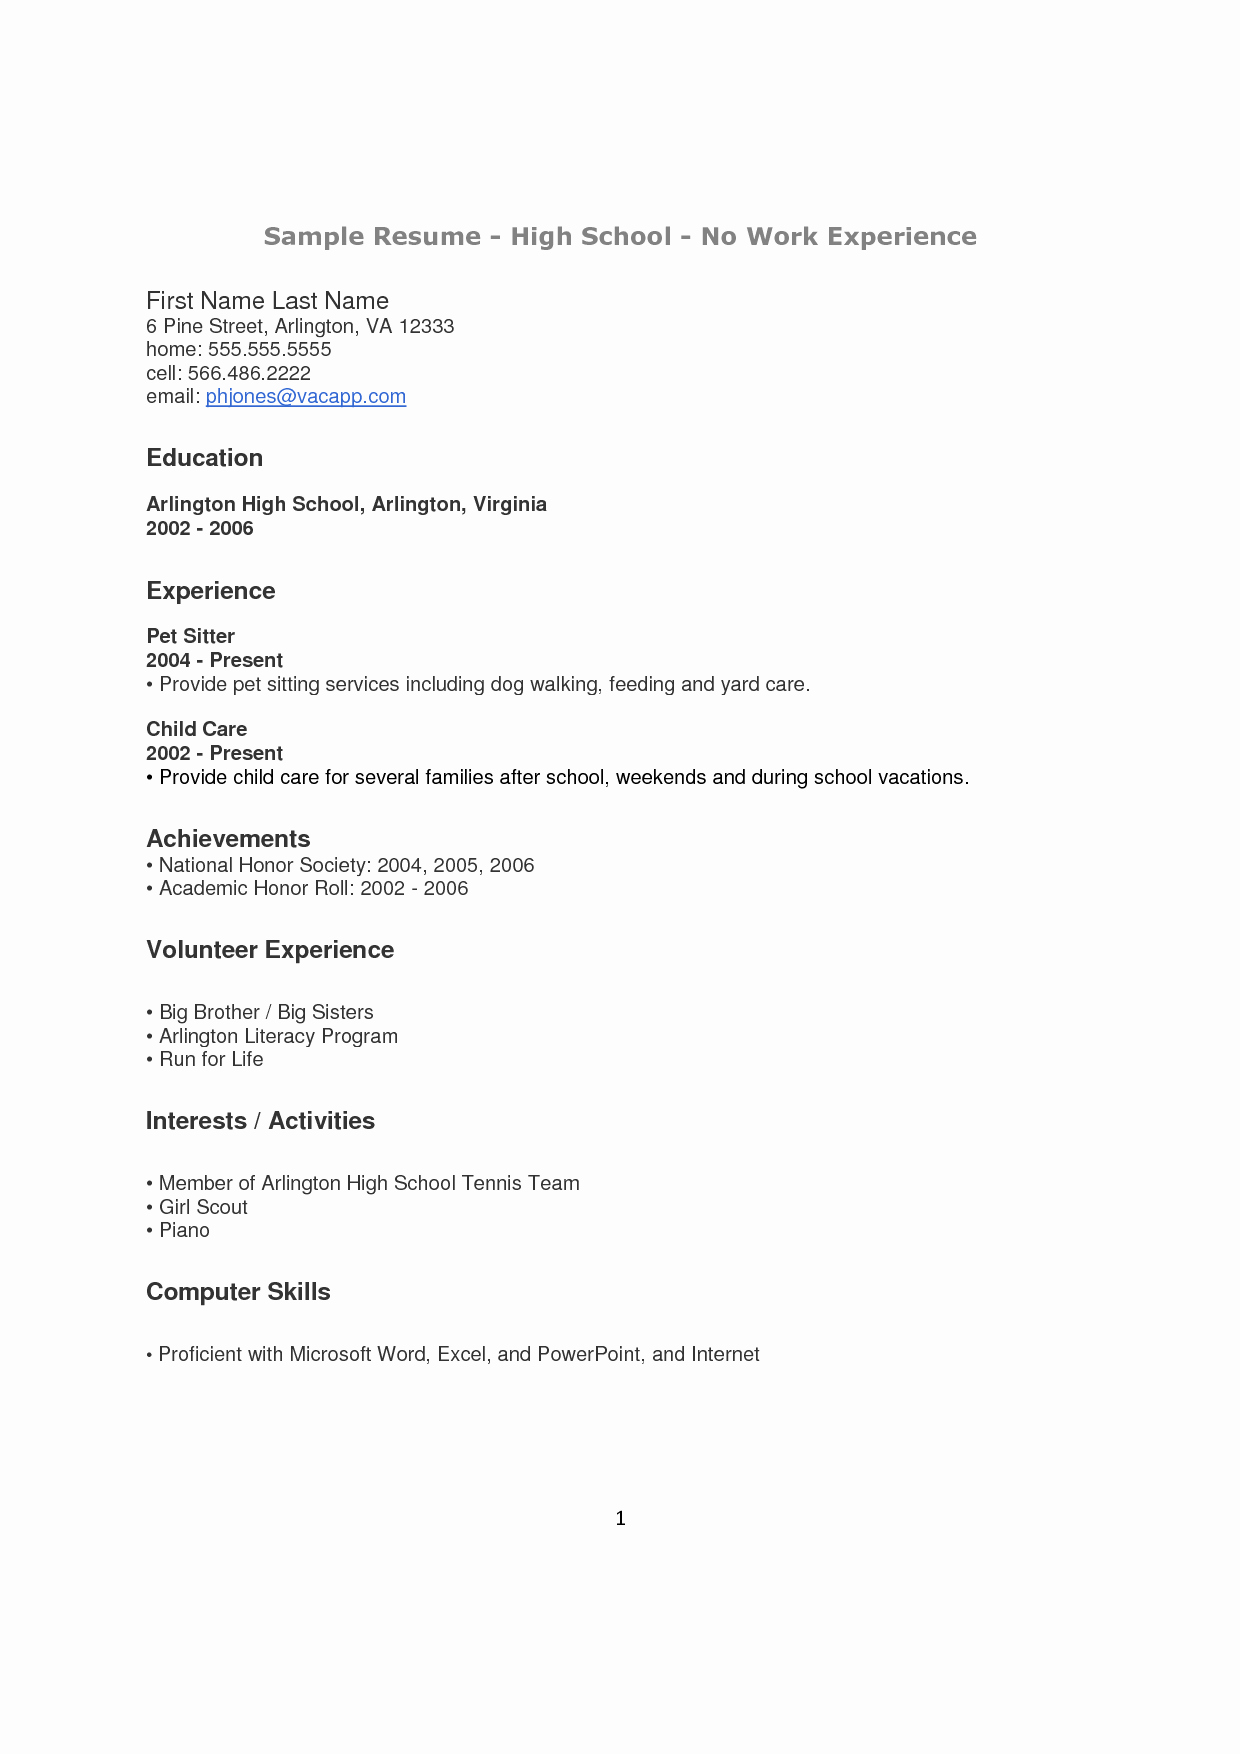 High School Job Resume New How to Make A Resume for A Highschool Student with No